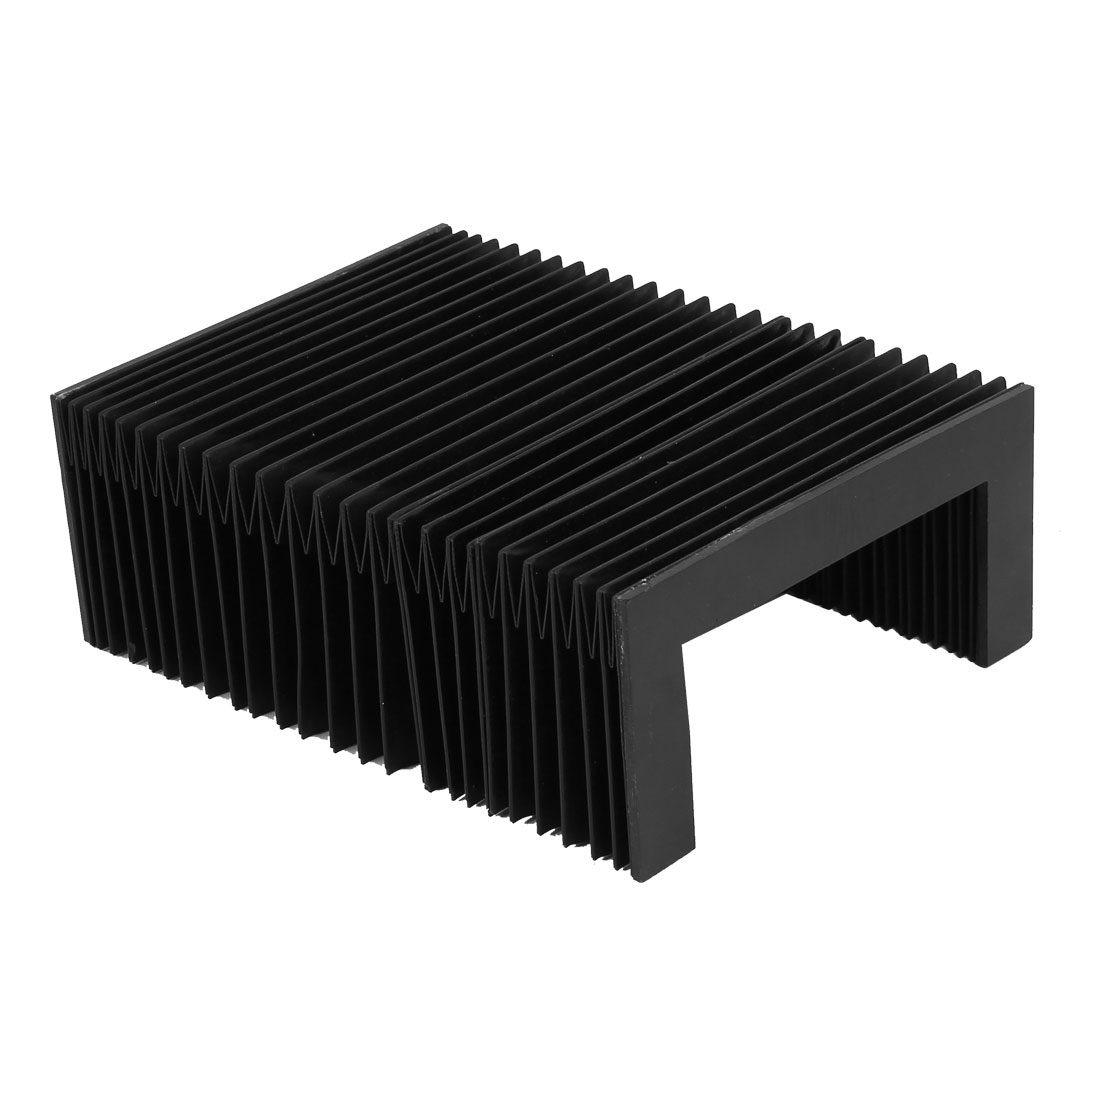 Synthetic Rubber Foldable Accordion Dust Protective Cover Black 160mmx75mm